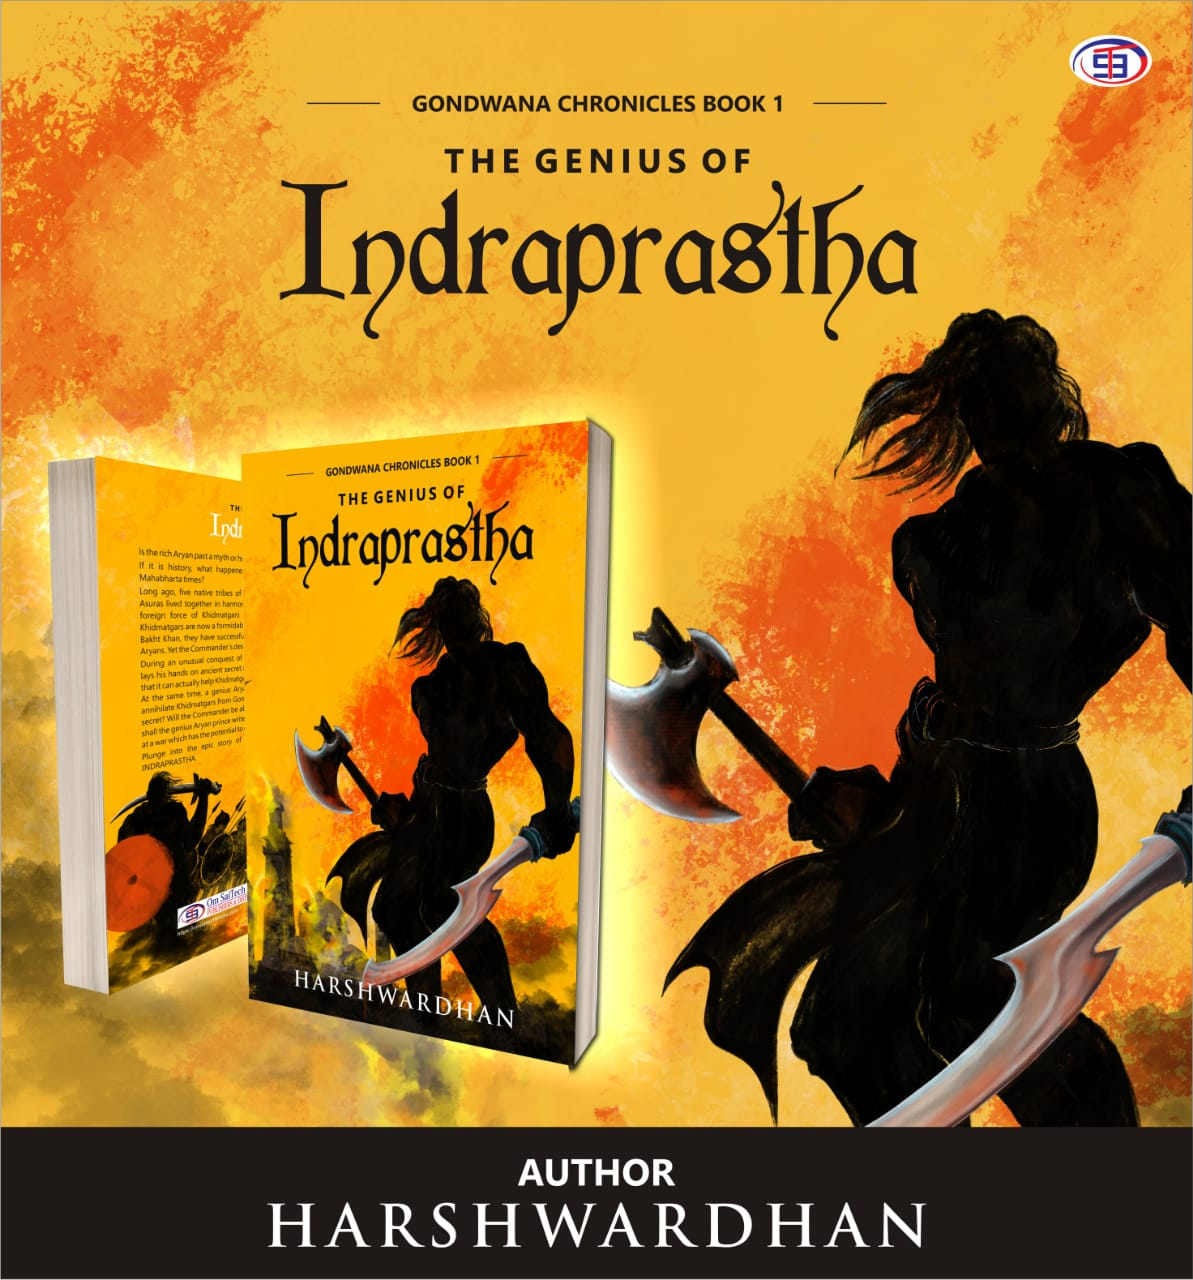 The Genius of Indraprastha (Gondwana Chronicles Book 1)